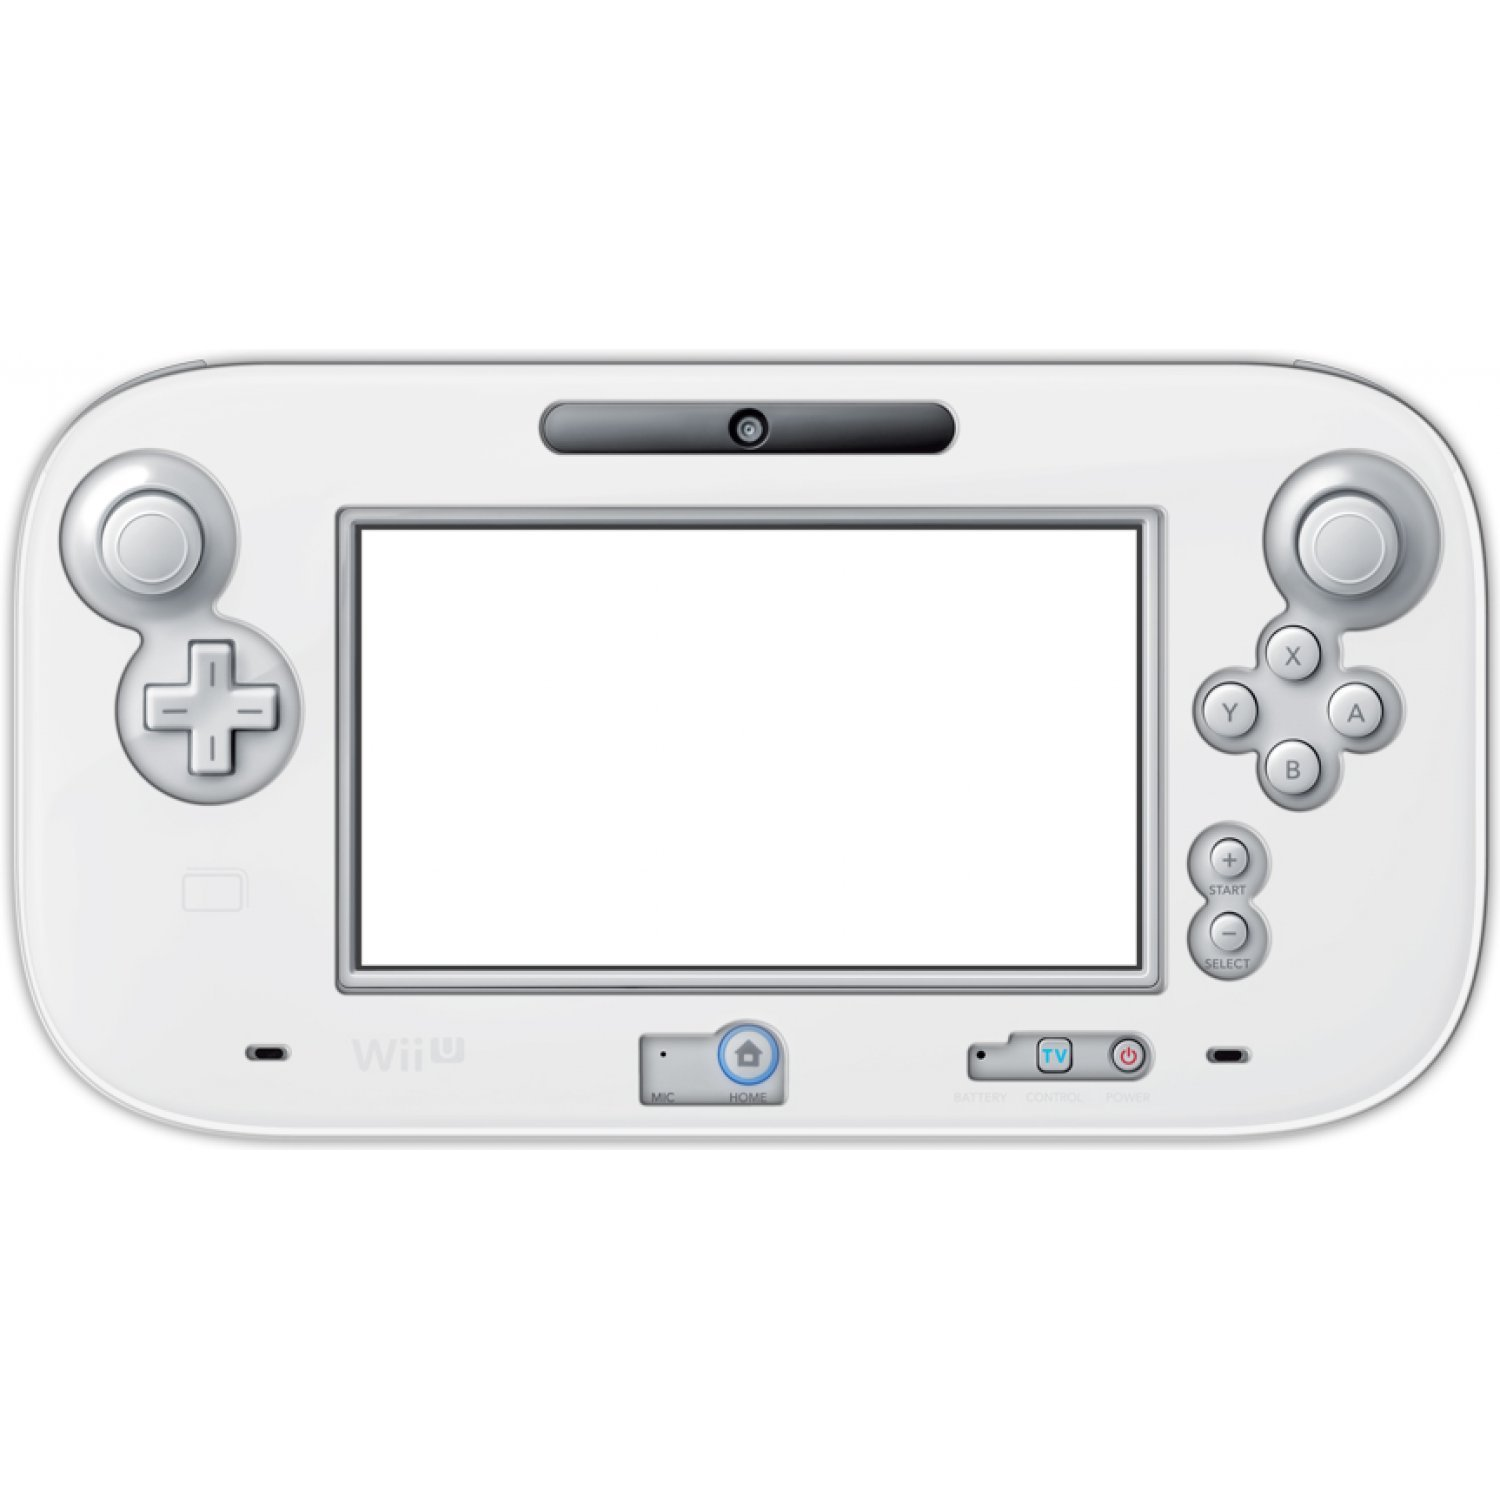 Images of Wii U Common Key - #rock-cafe